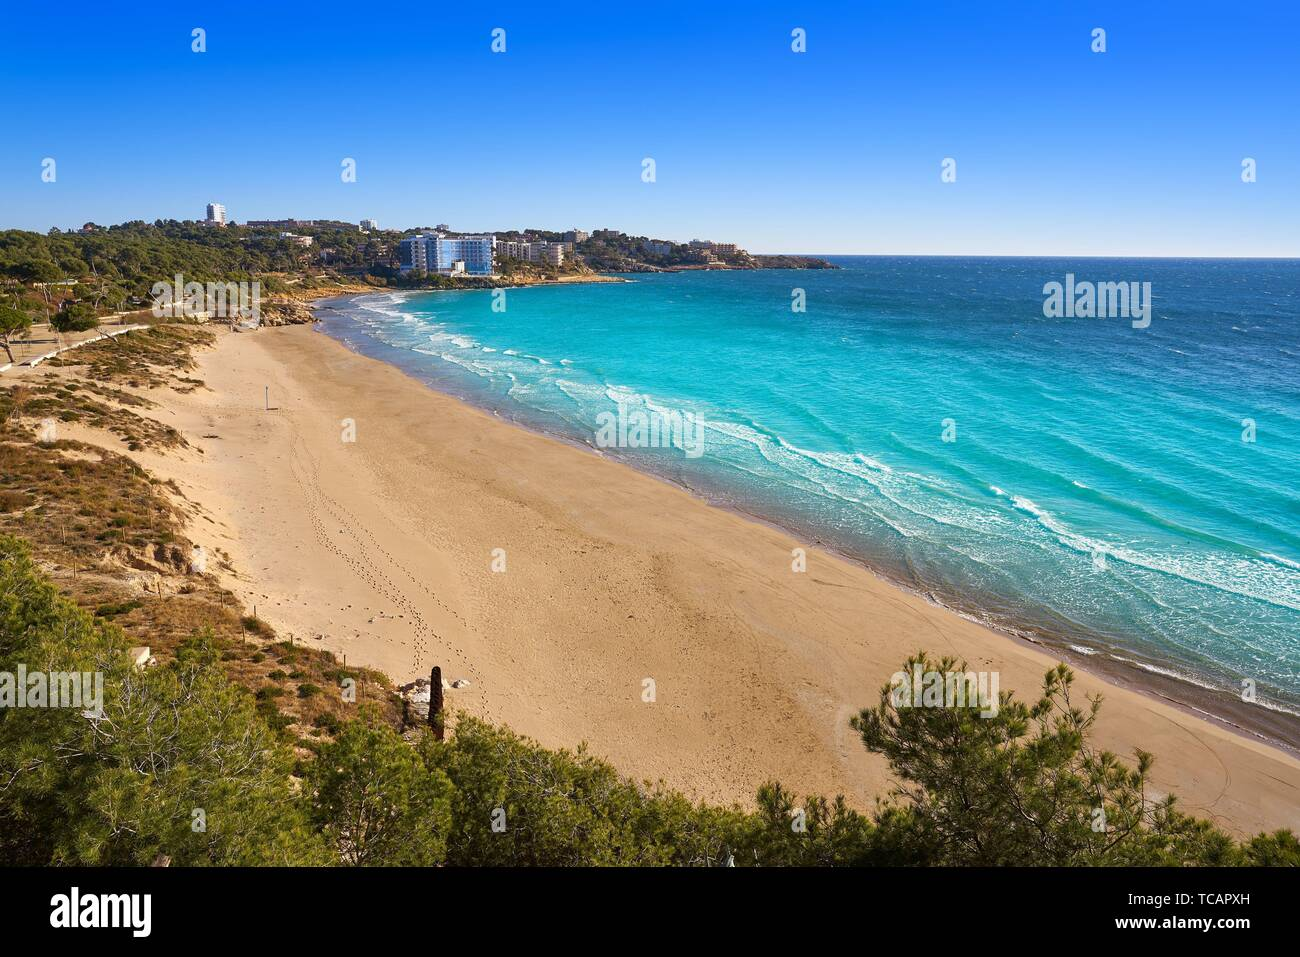 Platja Llarga Salou beach in Tarragona of Catalonia. Stock Photo